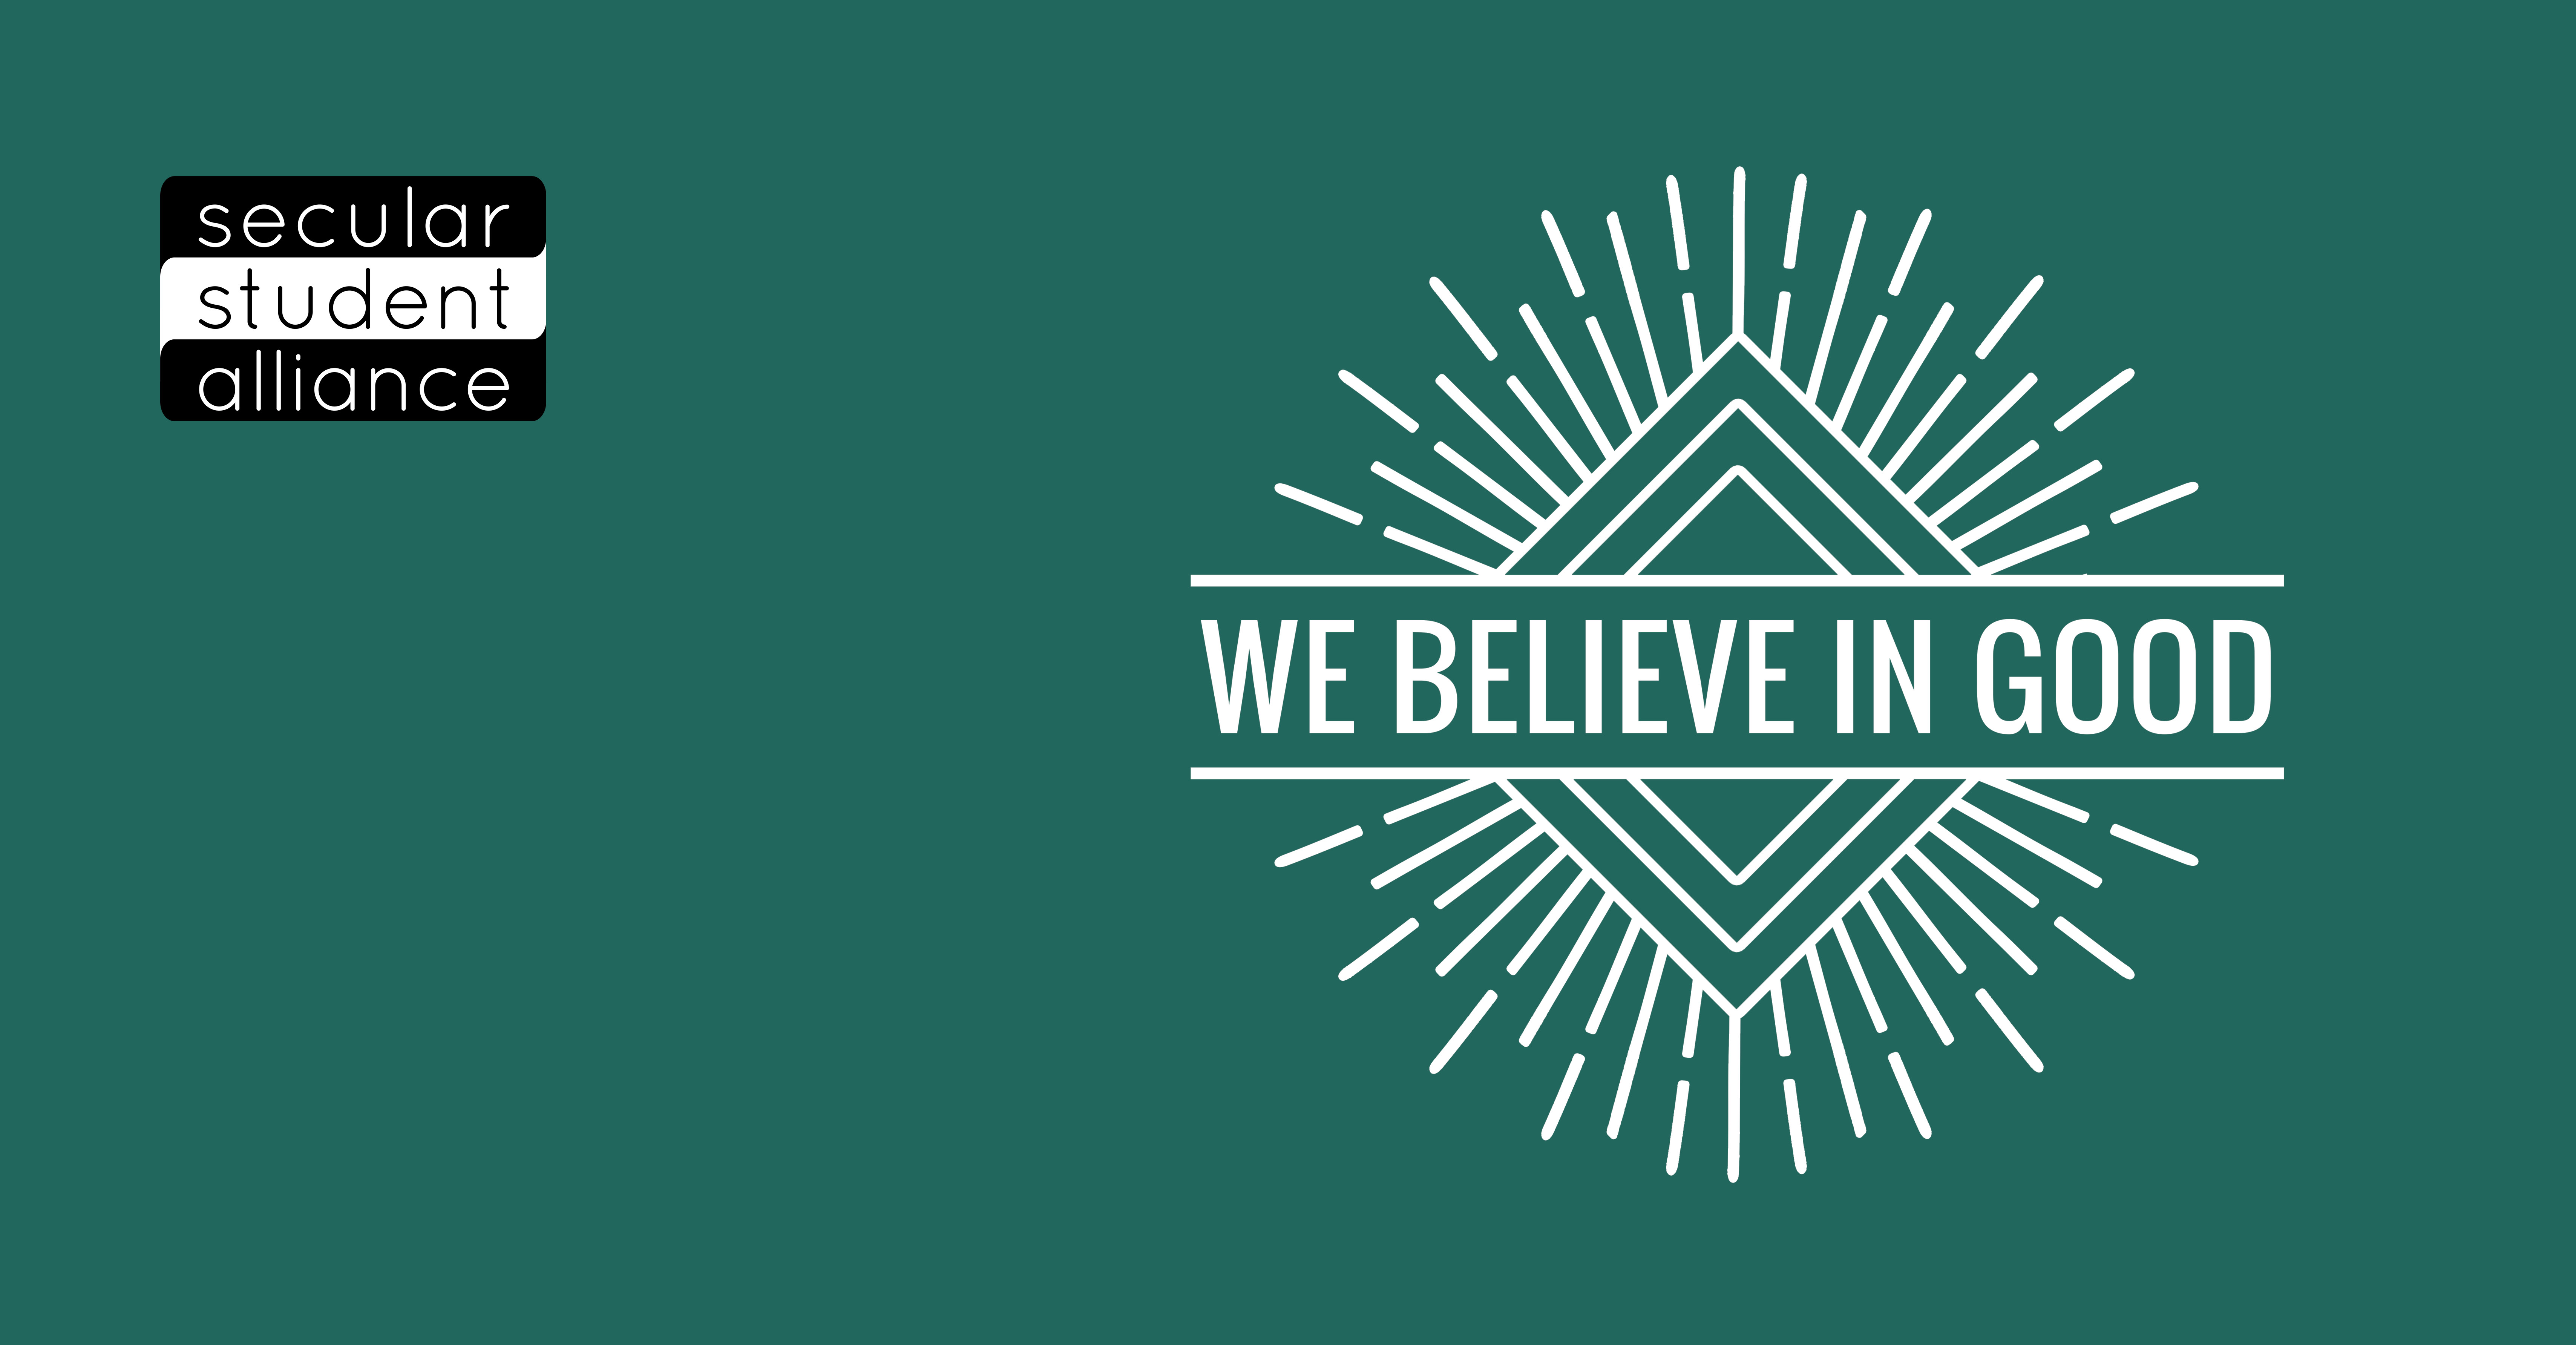 Believe Good - Facebook Group Cover Image 2018 (1)